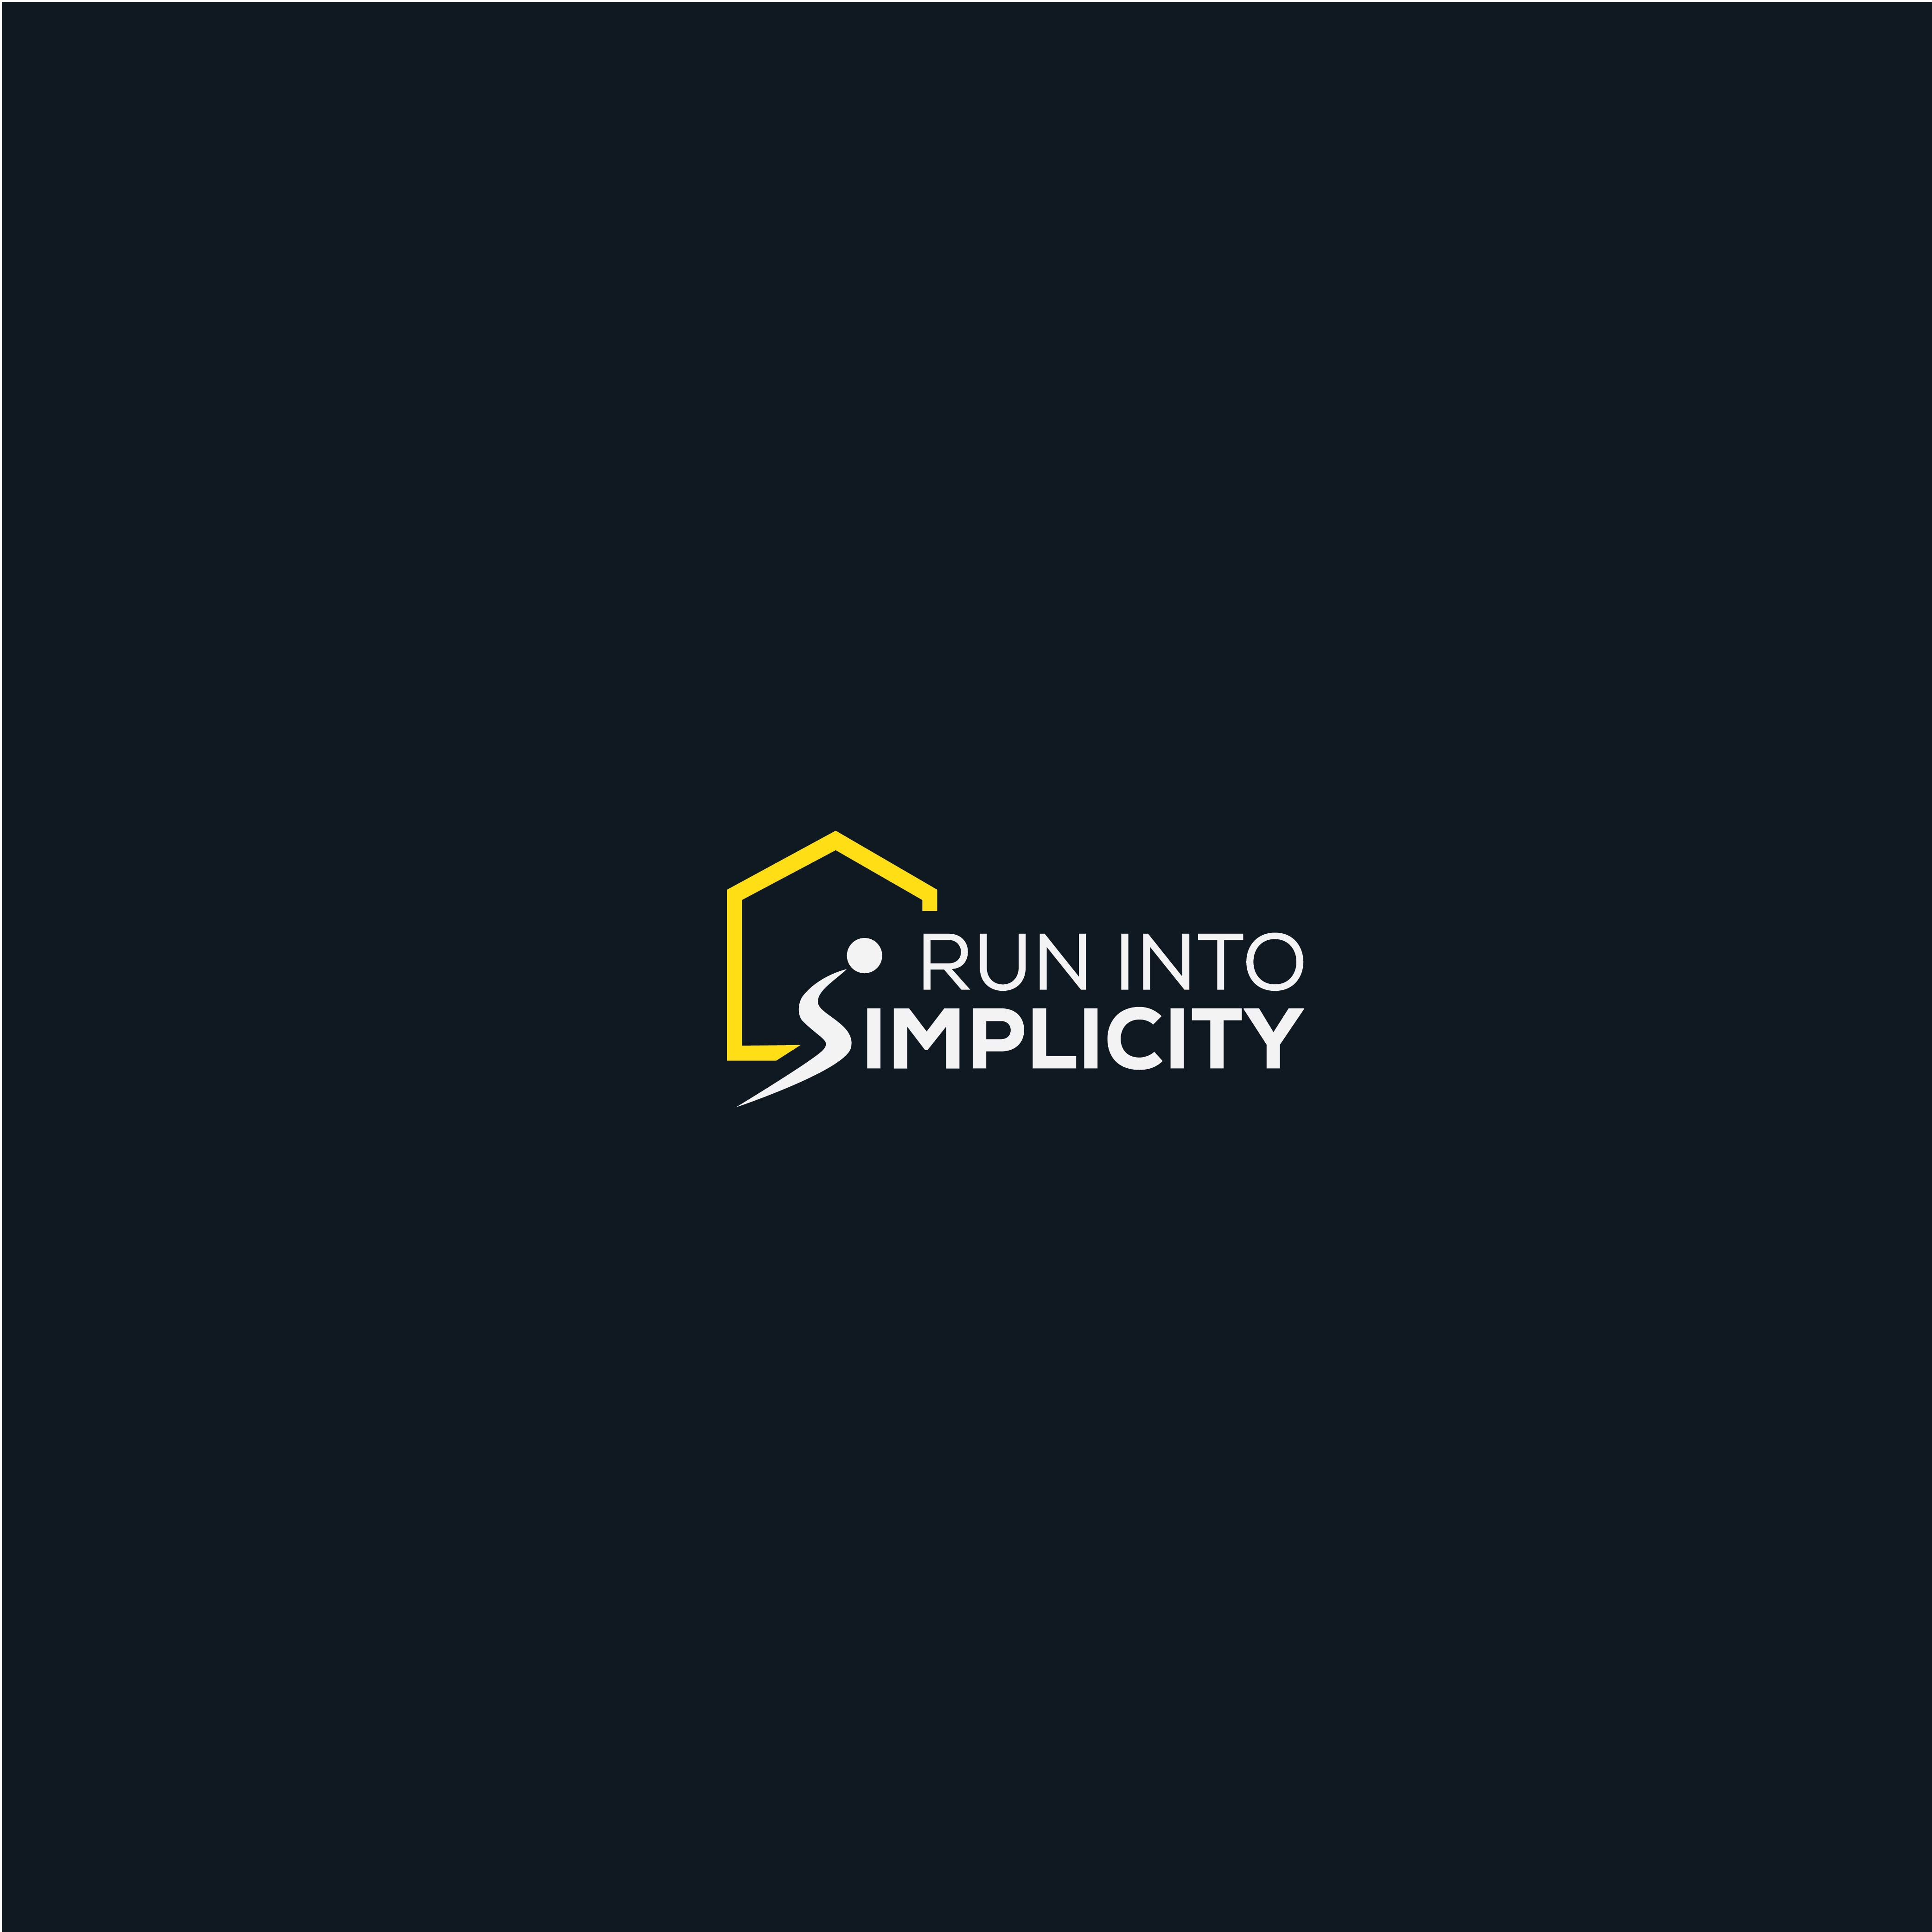 Run Into Simplicity needs a simple logo for Organizing Services